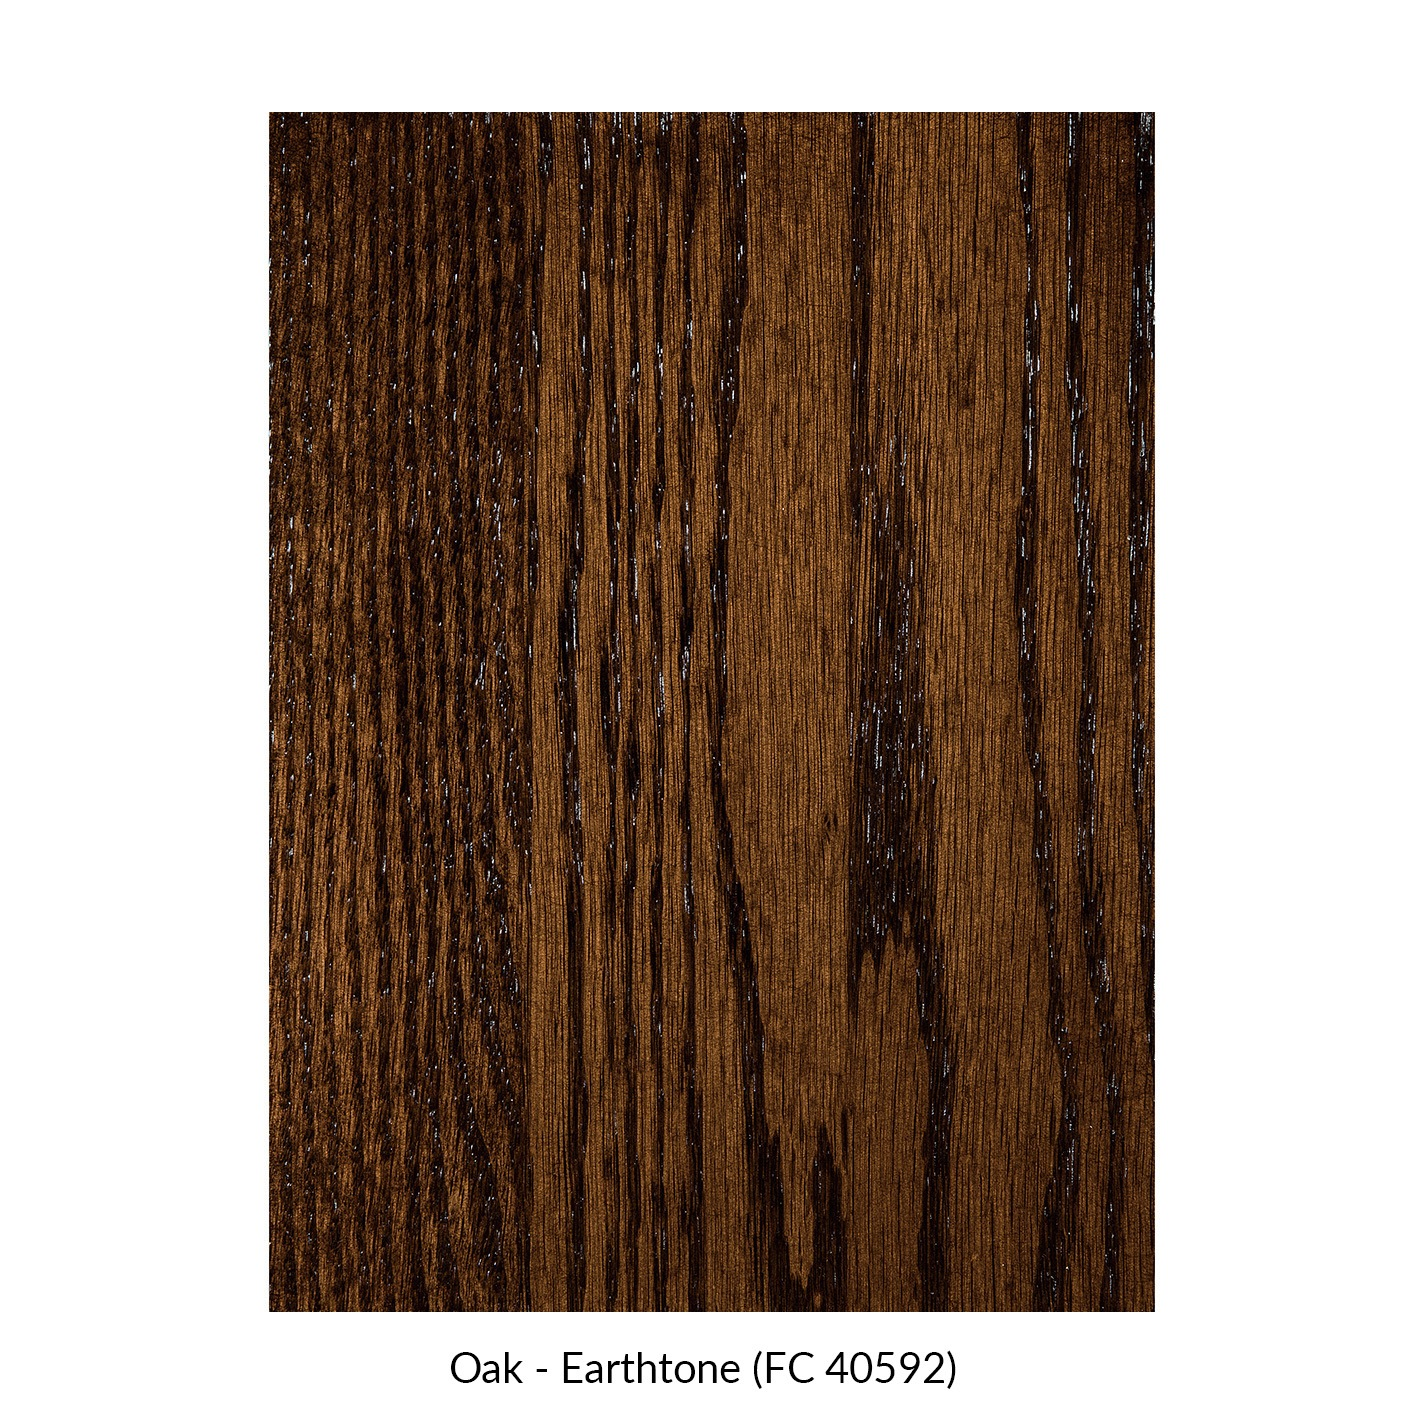 spectrum-oak-earthtone-fc-40592.jpg